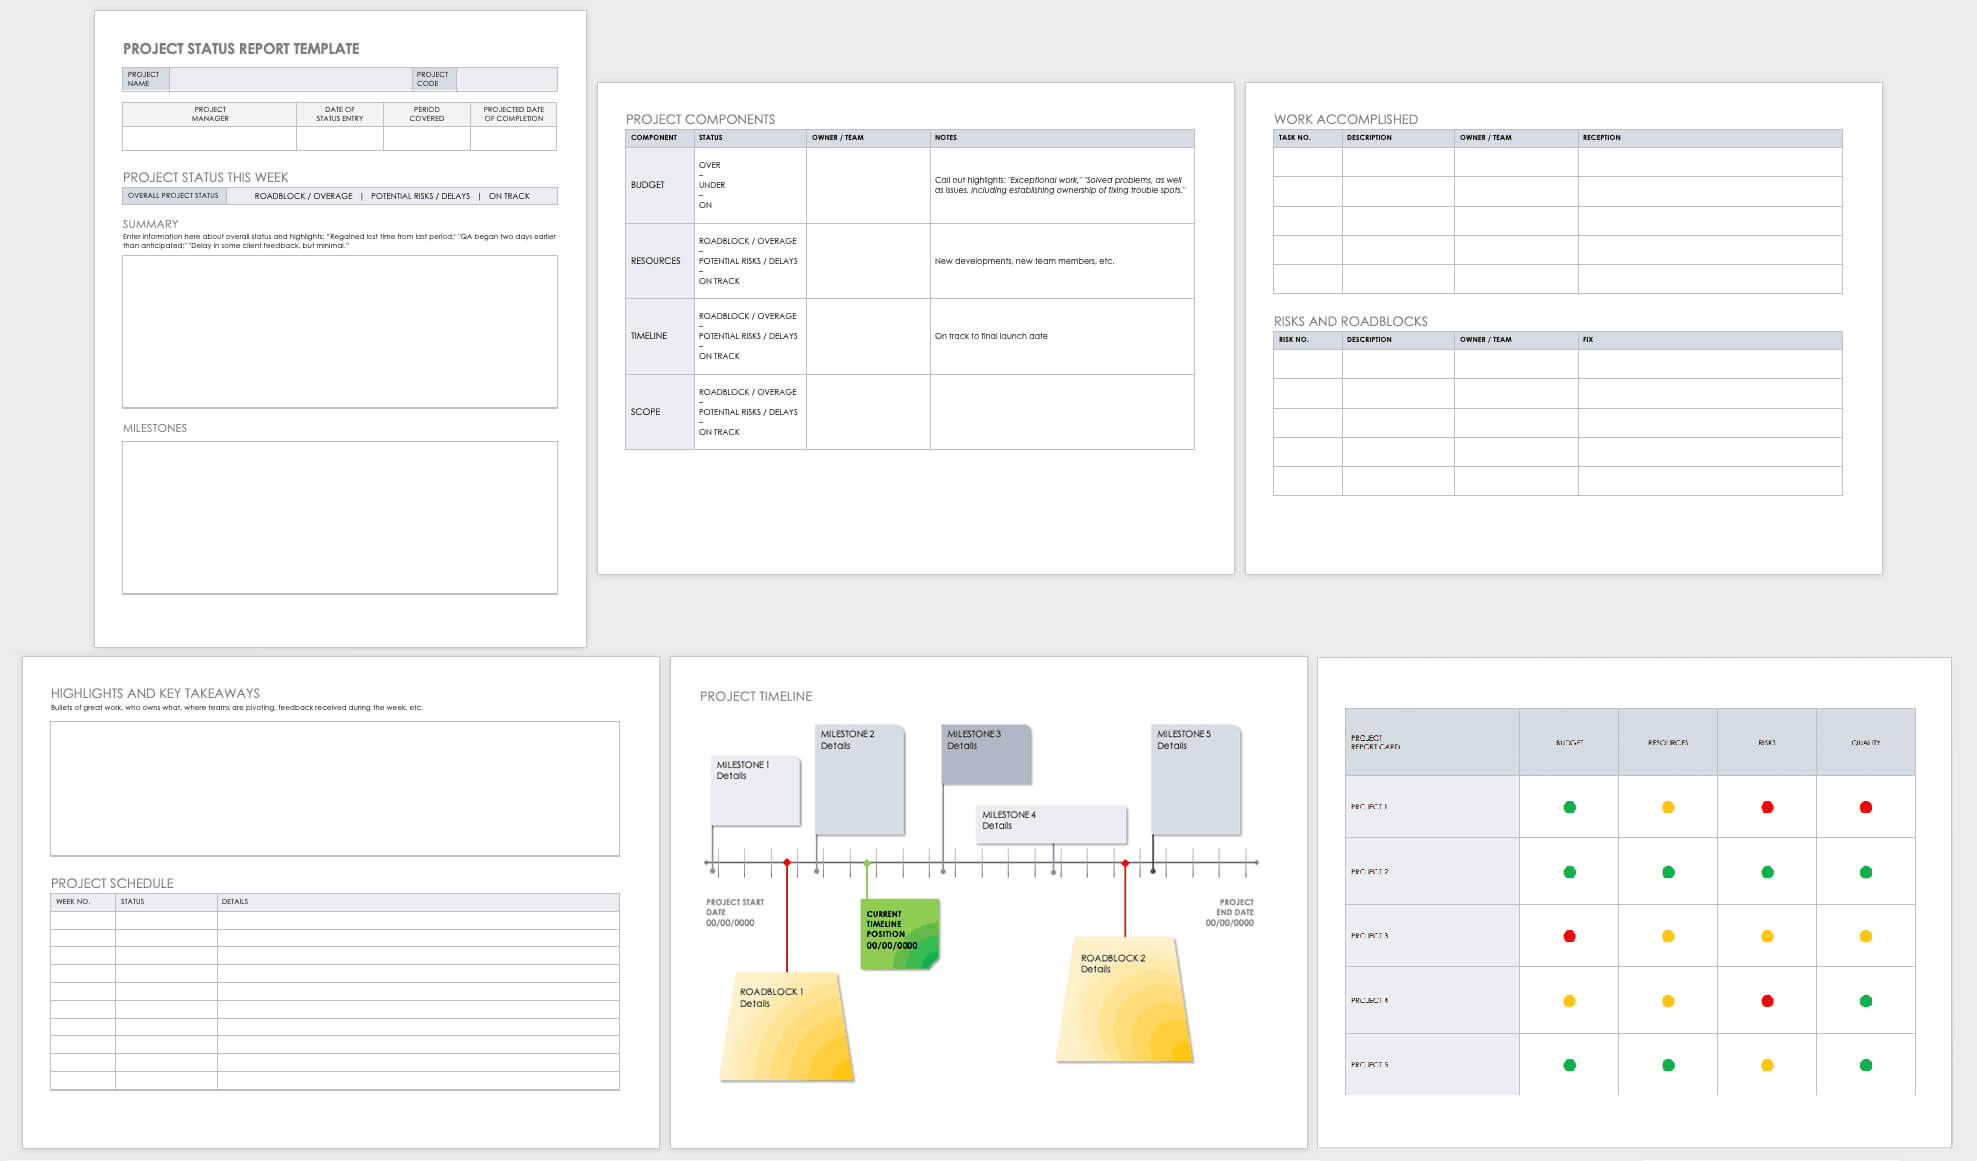 Free Project Report Templates | Smartsheet In Report To Senior Management Template